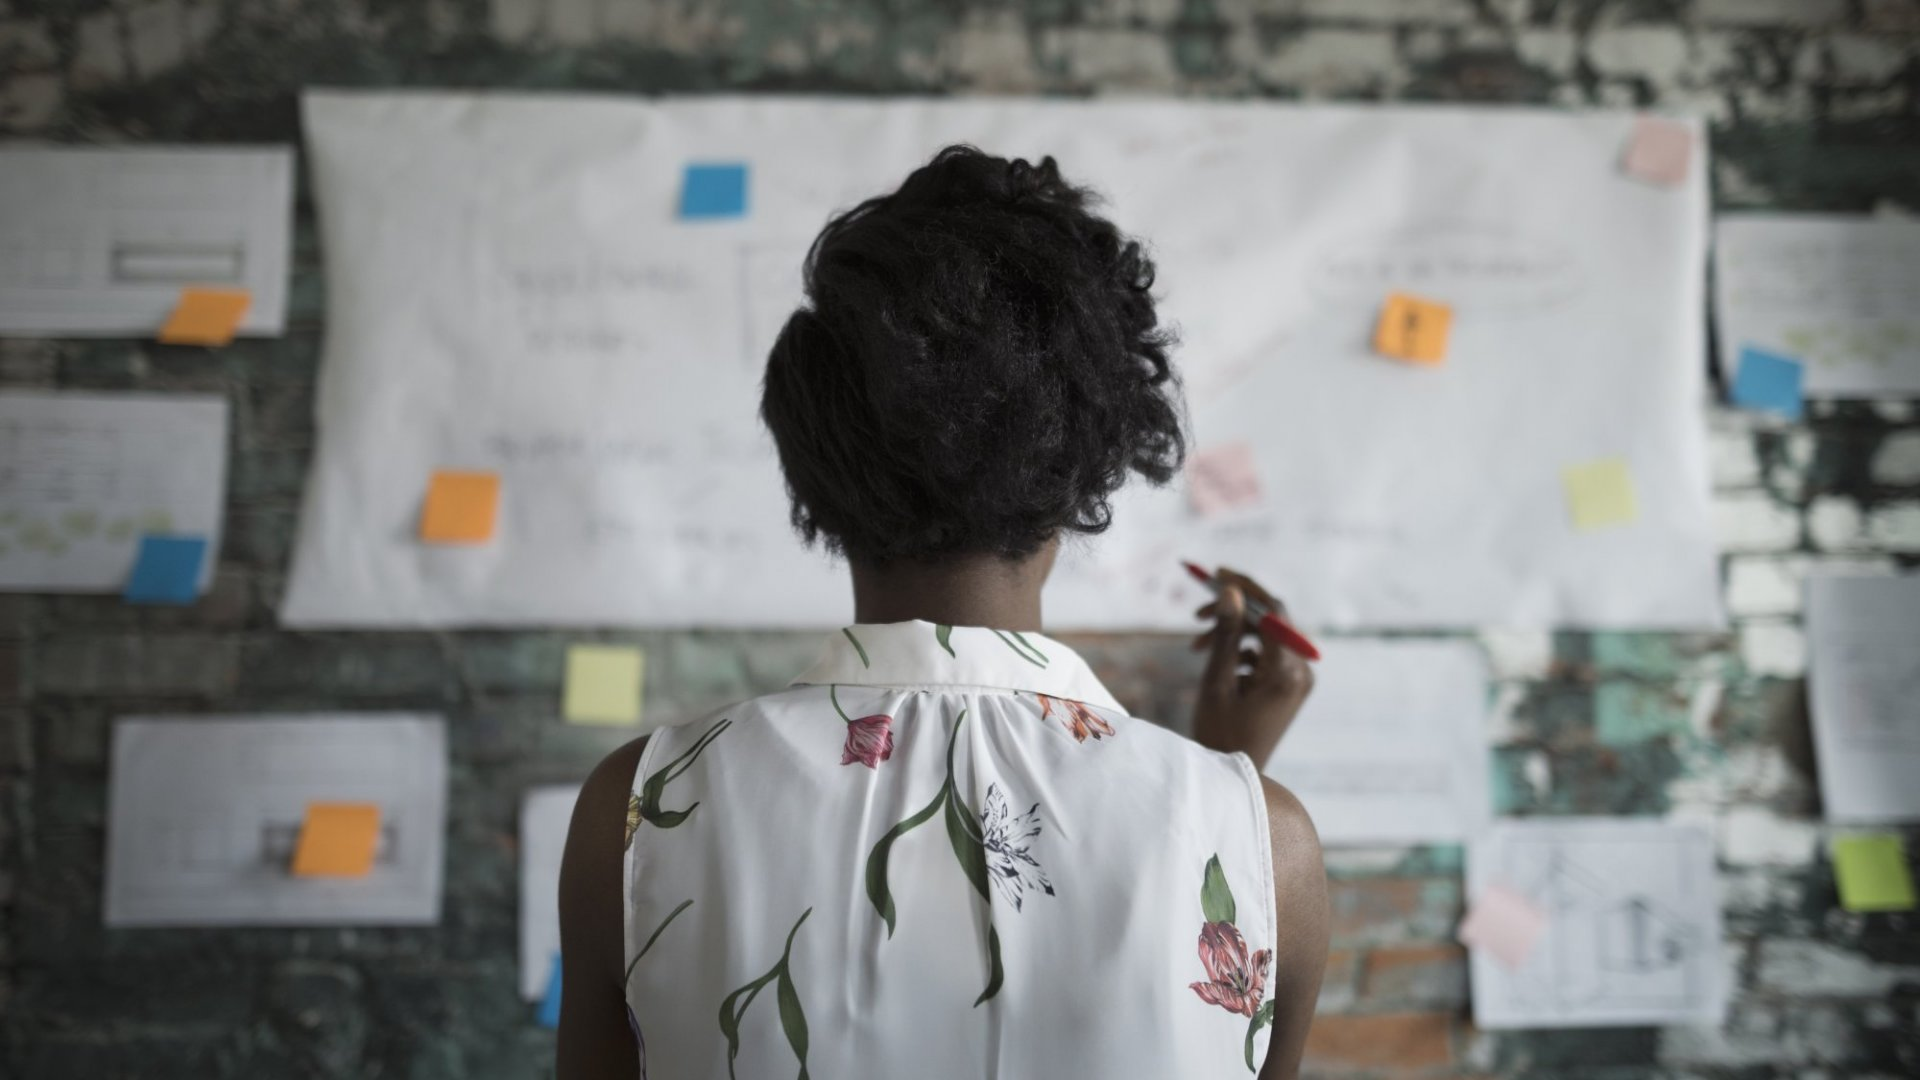 Do This One Thing Every Week To Grow Your Business